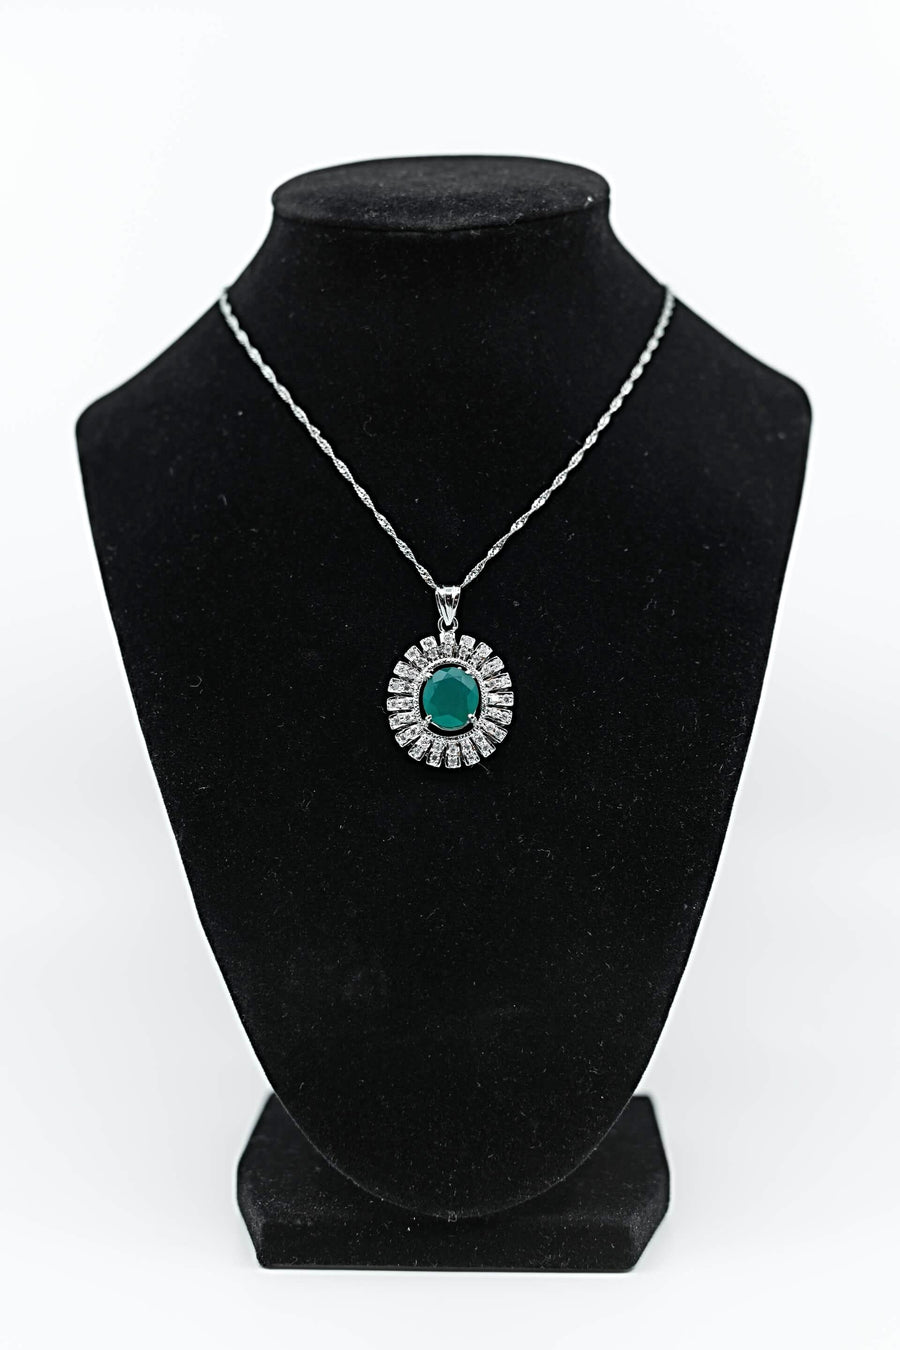 Genuine Green Topaz & White Sterling Silver Pendant Necklace